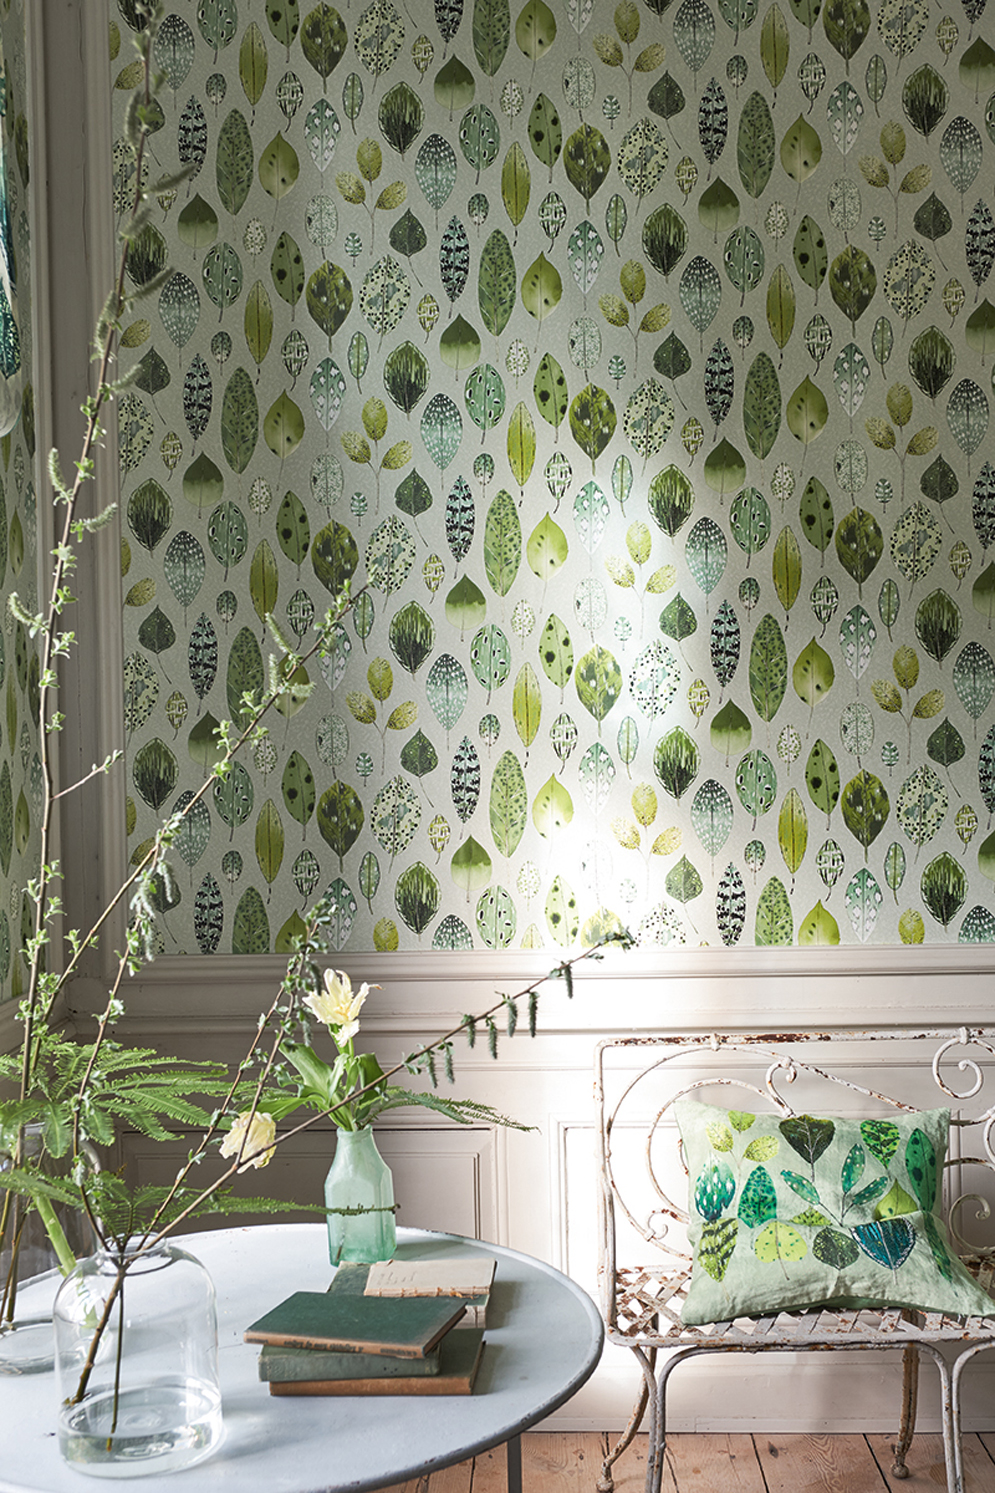 Designers Guild, Zardozi - Tulsi wallpaper<div style='clear:both;width:100%;height:0px;'></div><span class='cat'>Designers Guild</span>